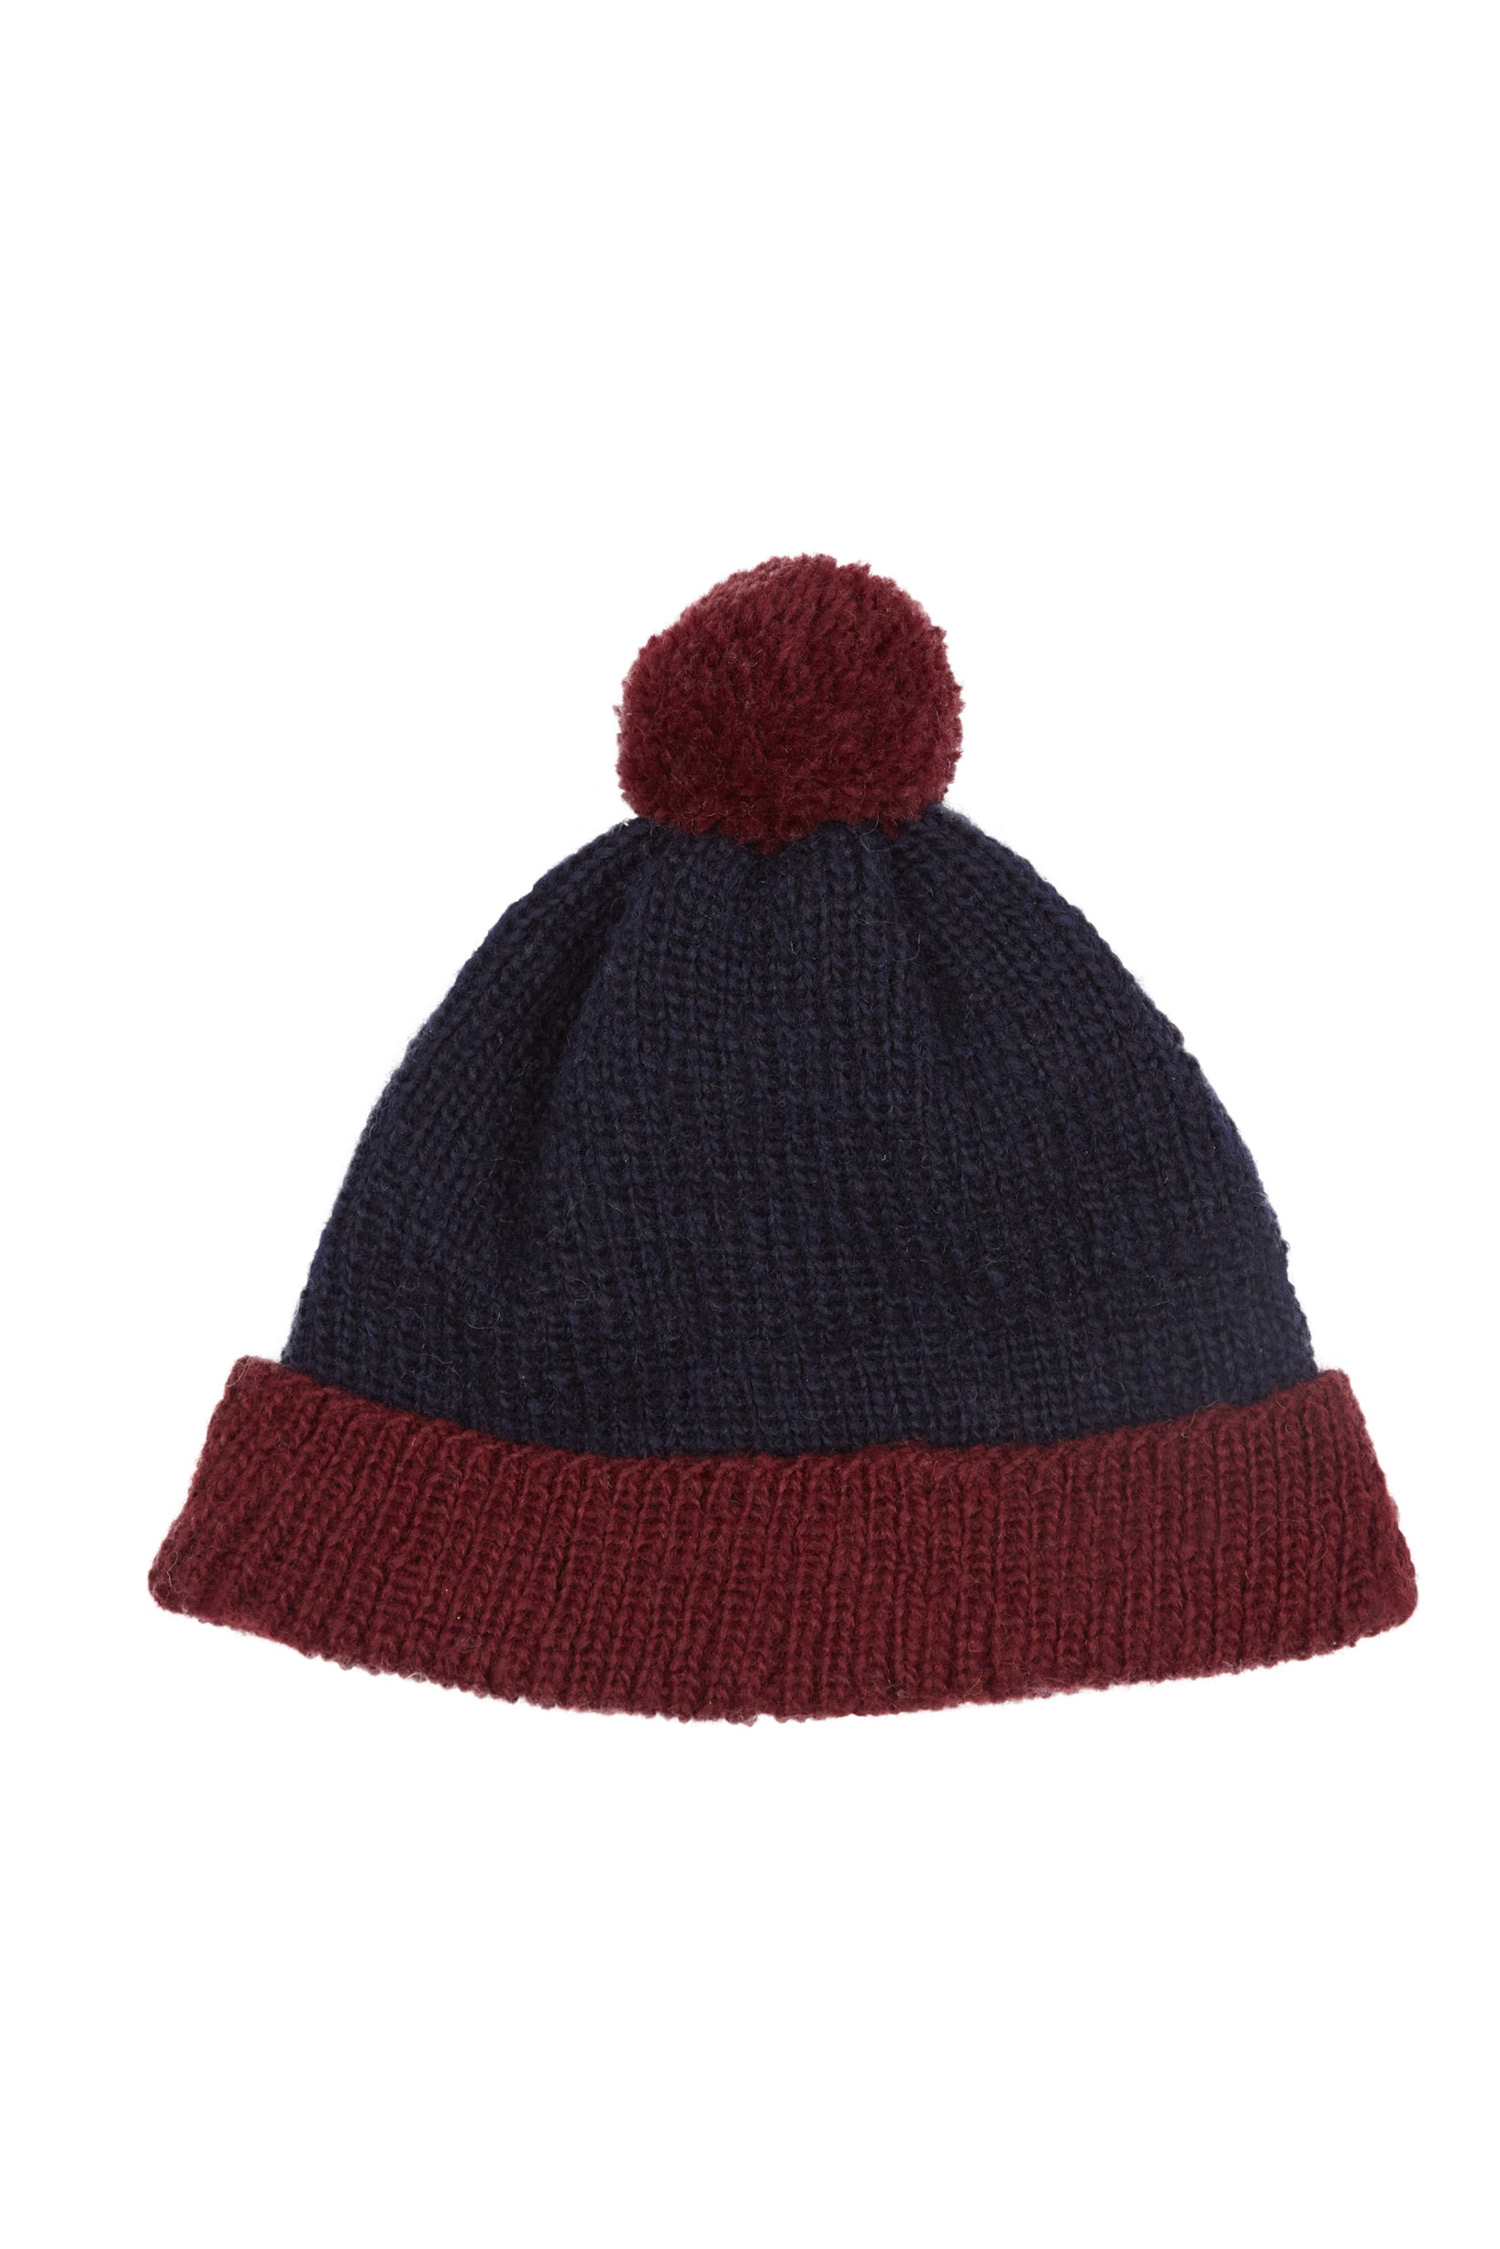 315c50130 discount code for navy bobble hat 09400 6e9f5